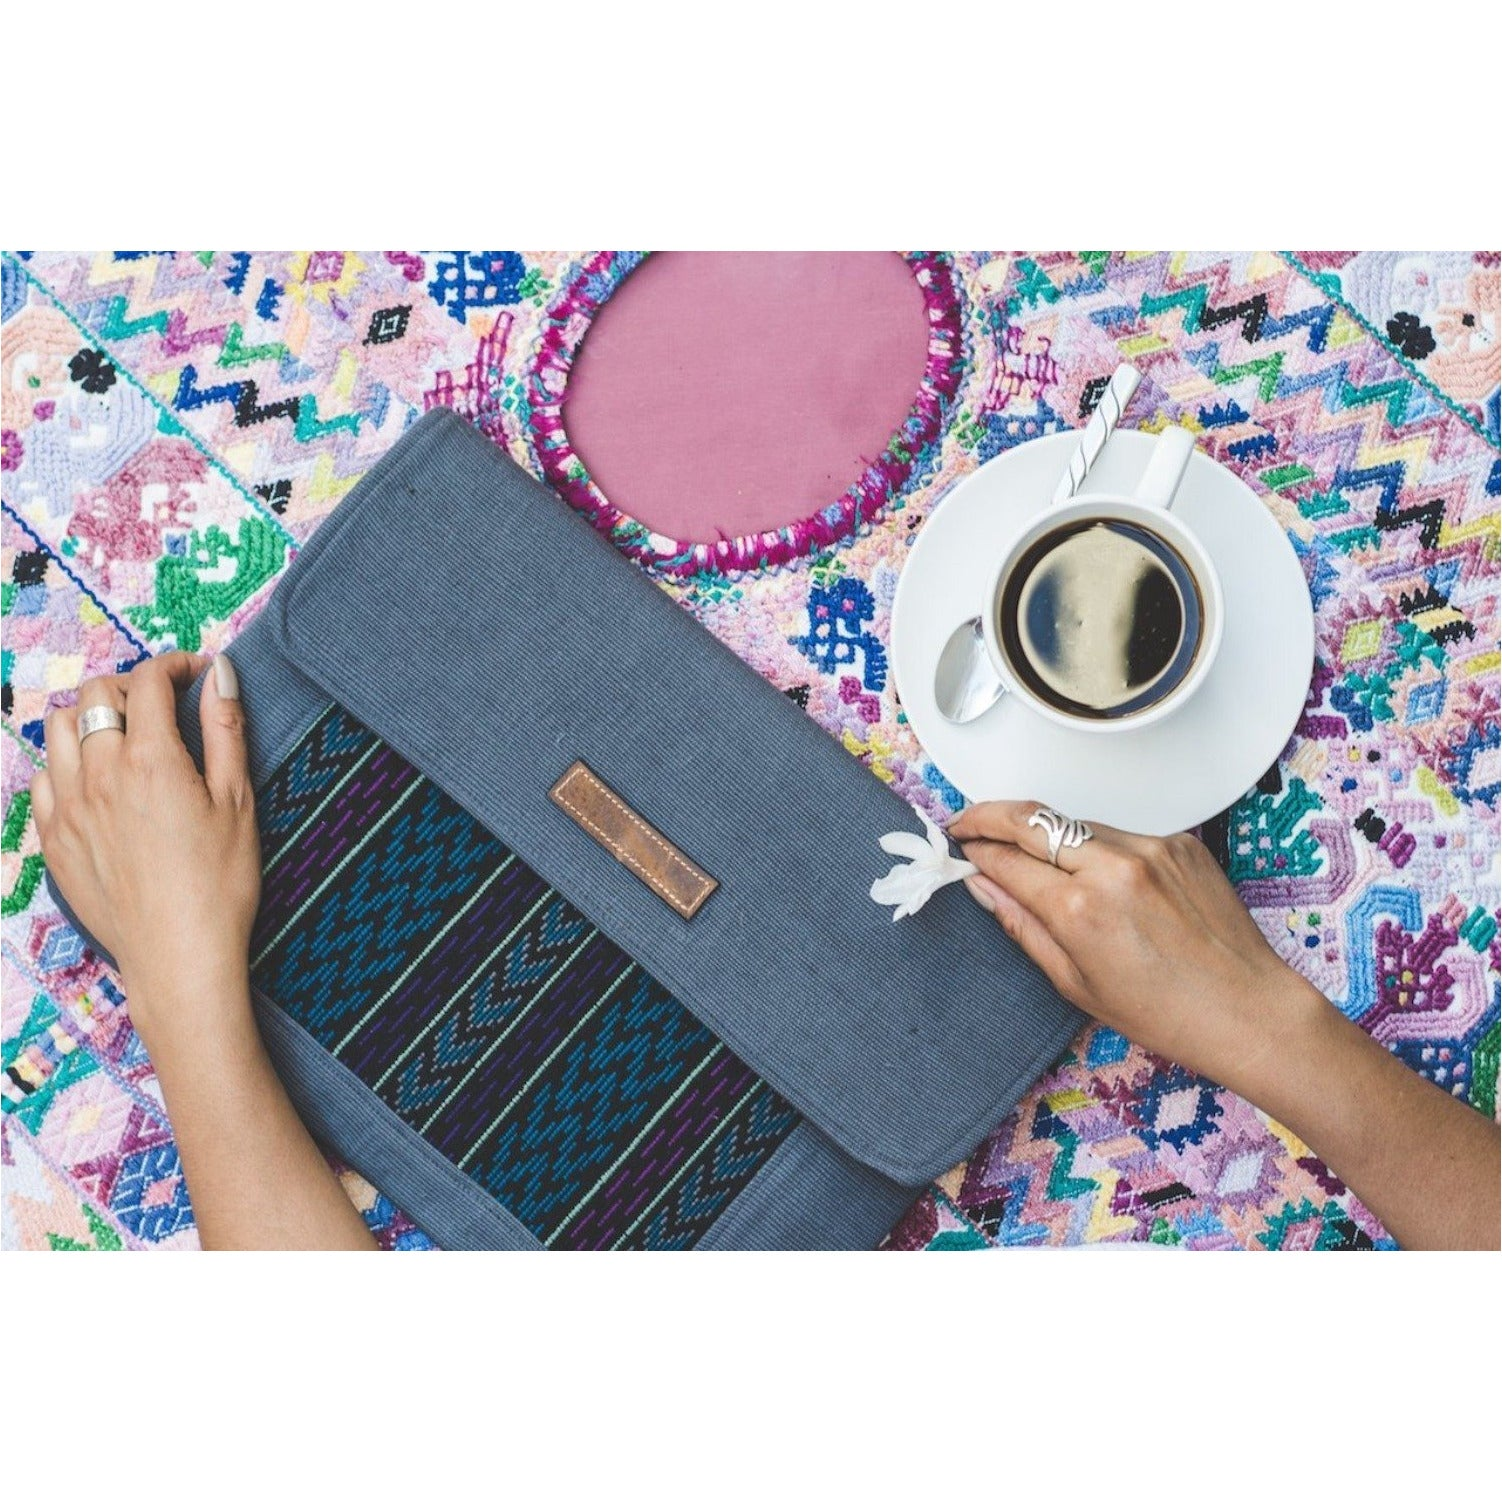 Uq K'iche' Laptop Case